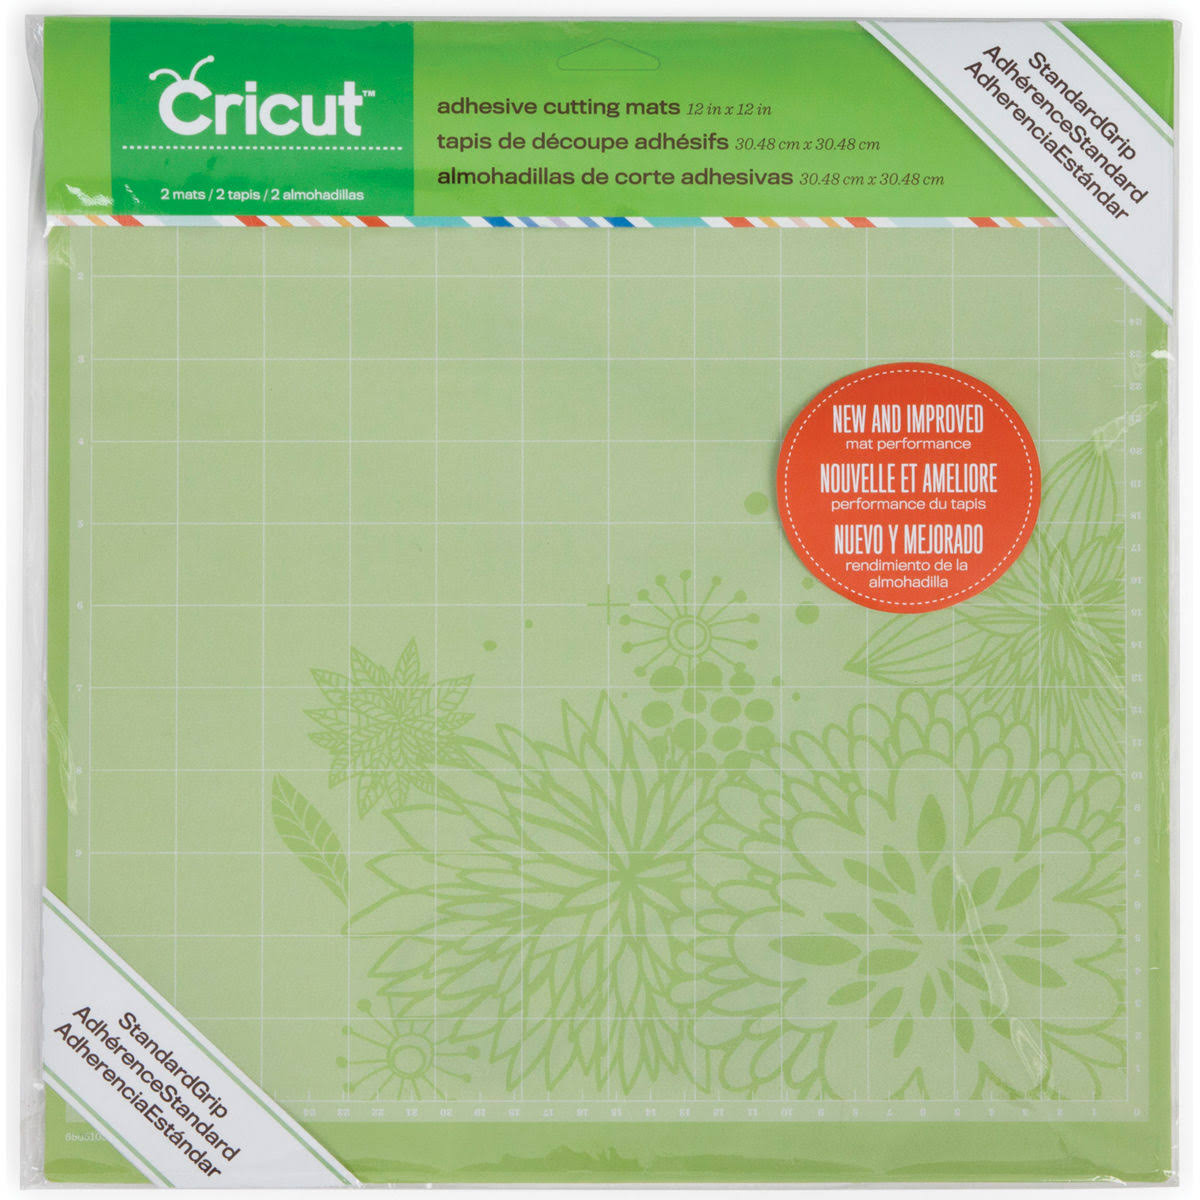 Cricut StandardGrip Cutting Mat 12 x 12 Inches